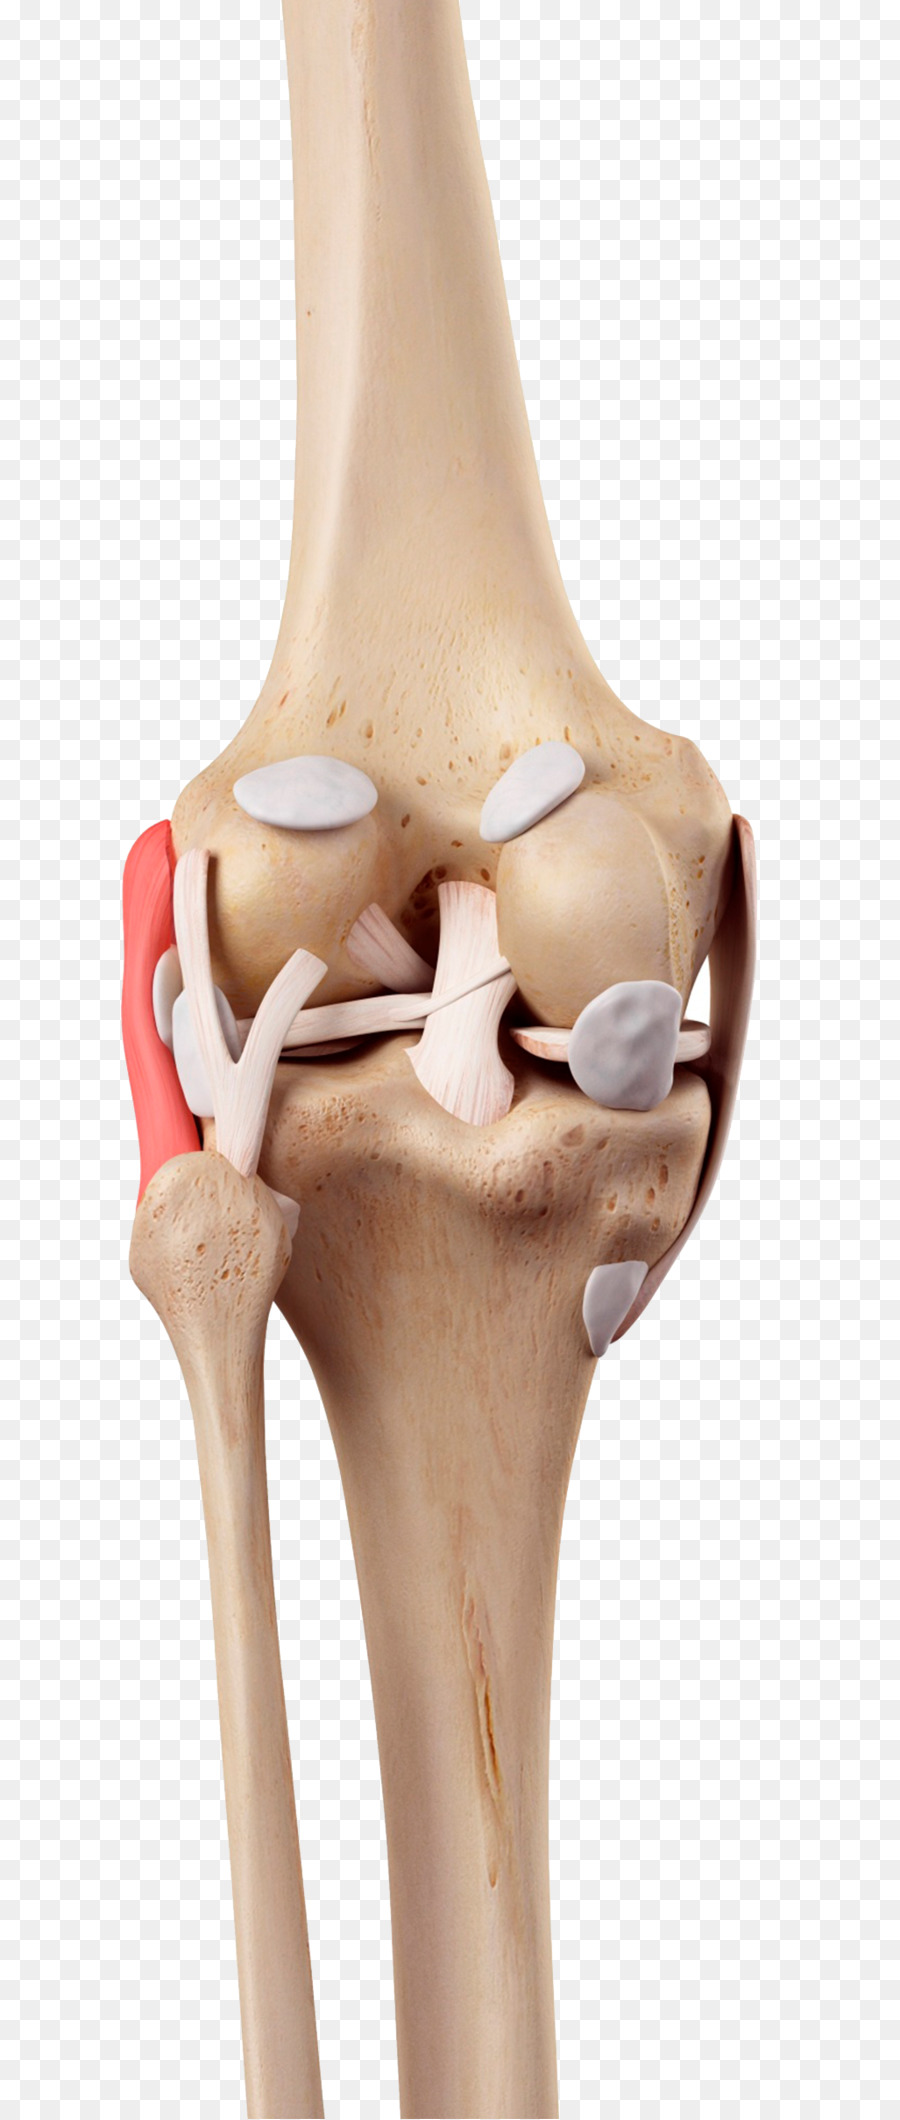 Knee Medial Collateral Ligament Fibular Collateral Ligament Anterior